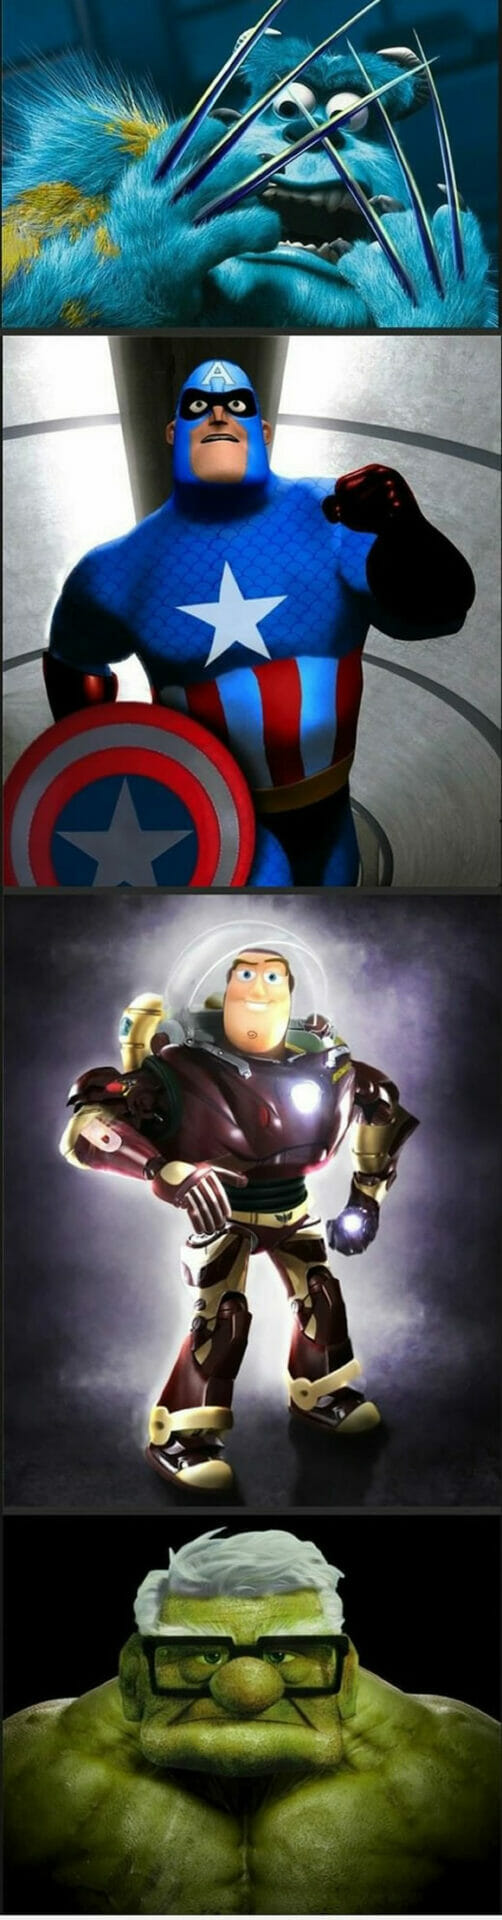 Isso é legal do dia: Mashup Pixar com Marvel